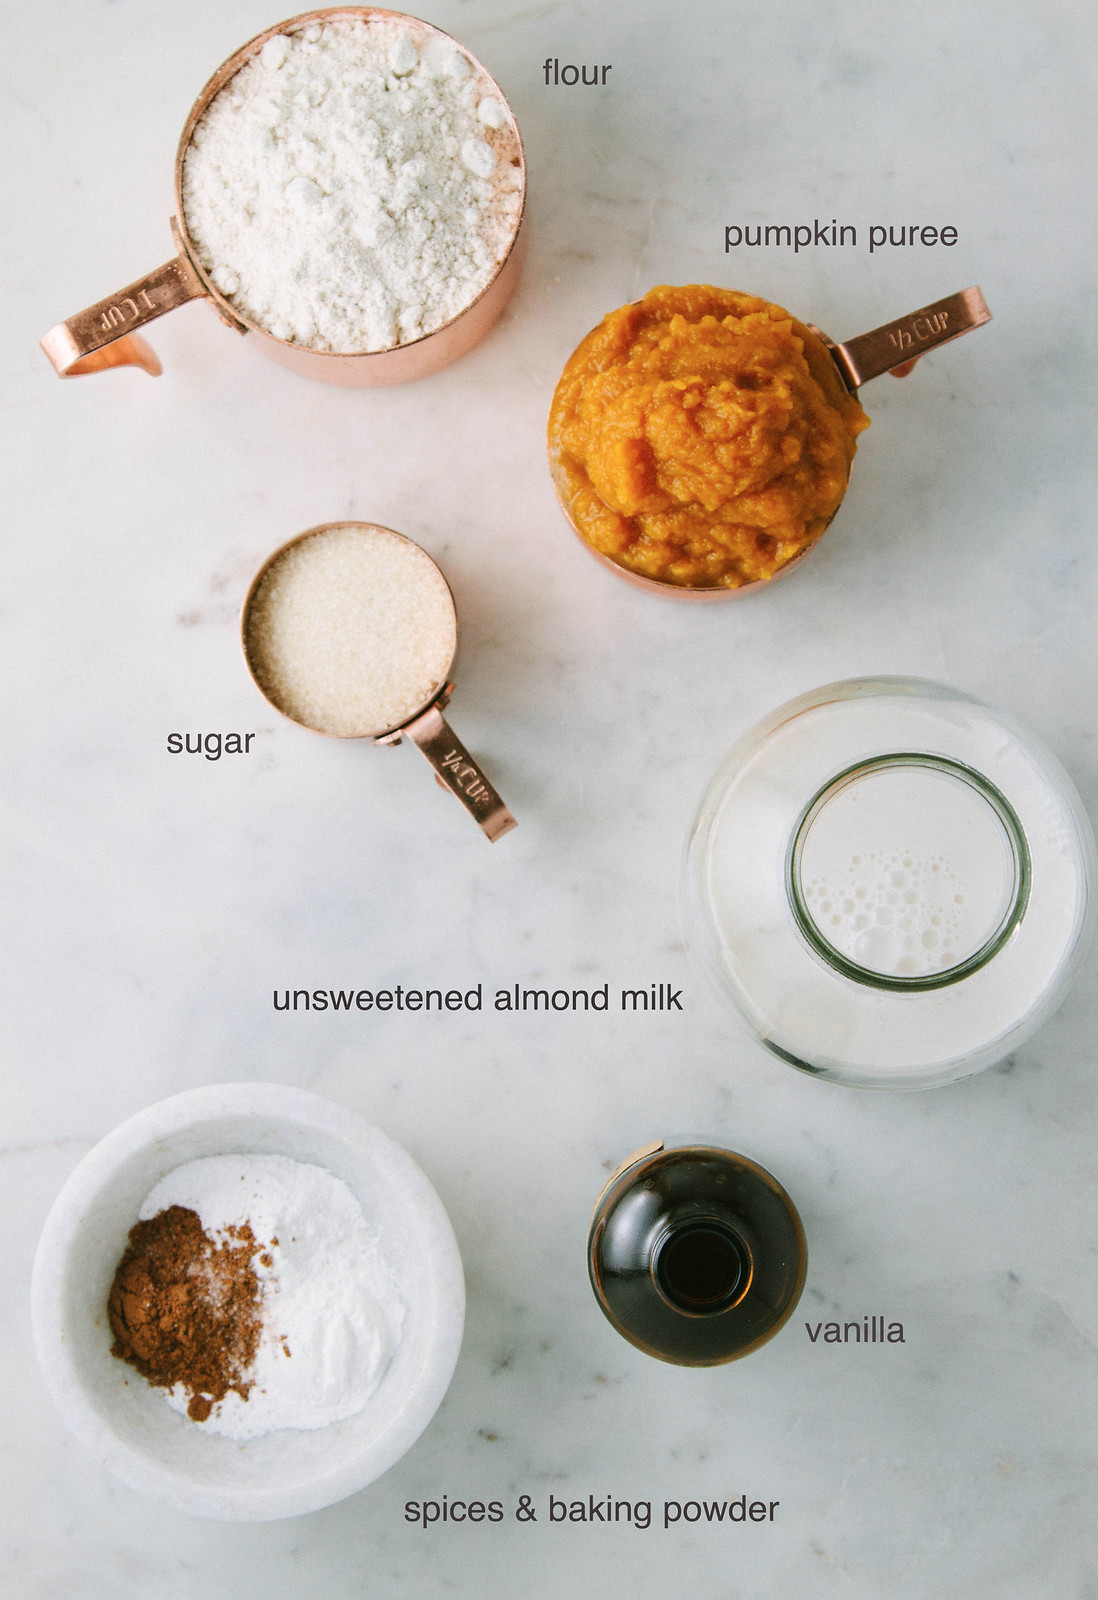 PUMPKIN PANCAKE INGREDIENTS